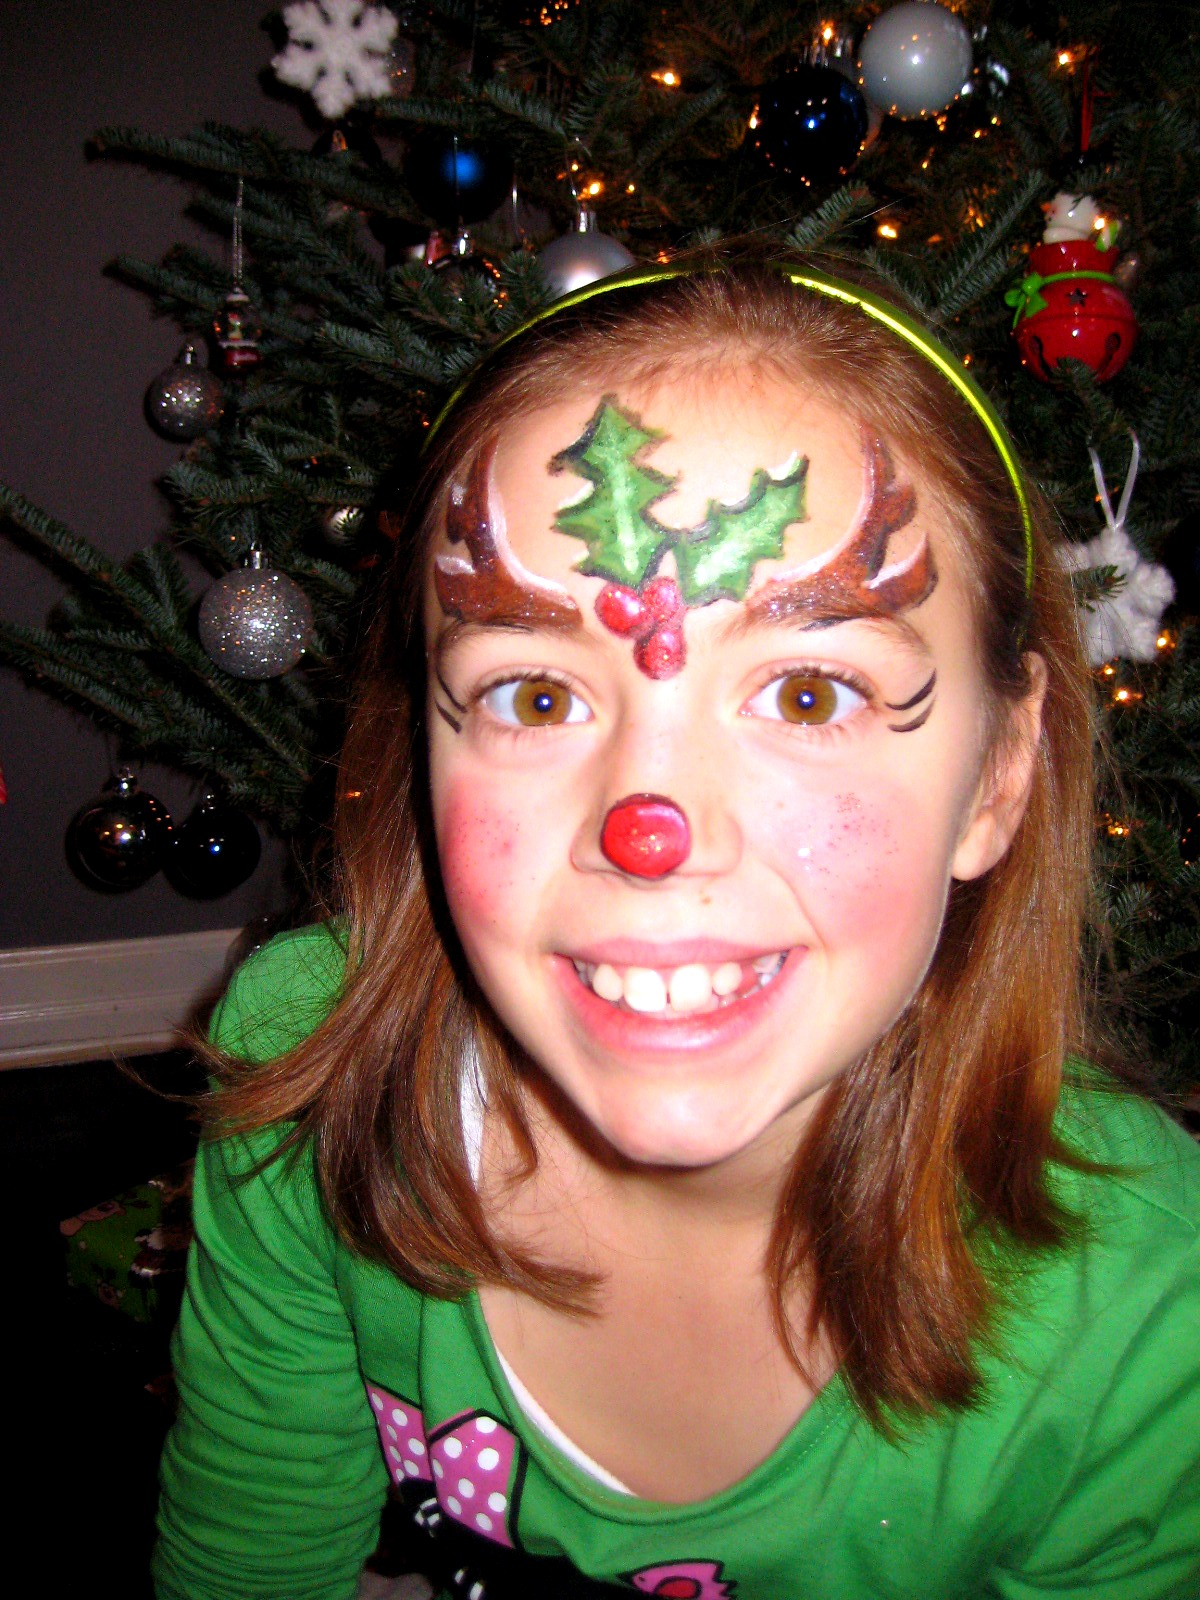 Displaying 20 gt images for reindeer face painting designs